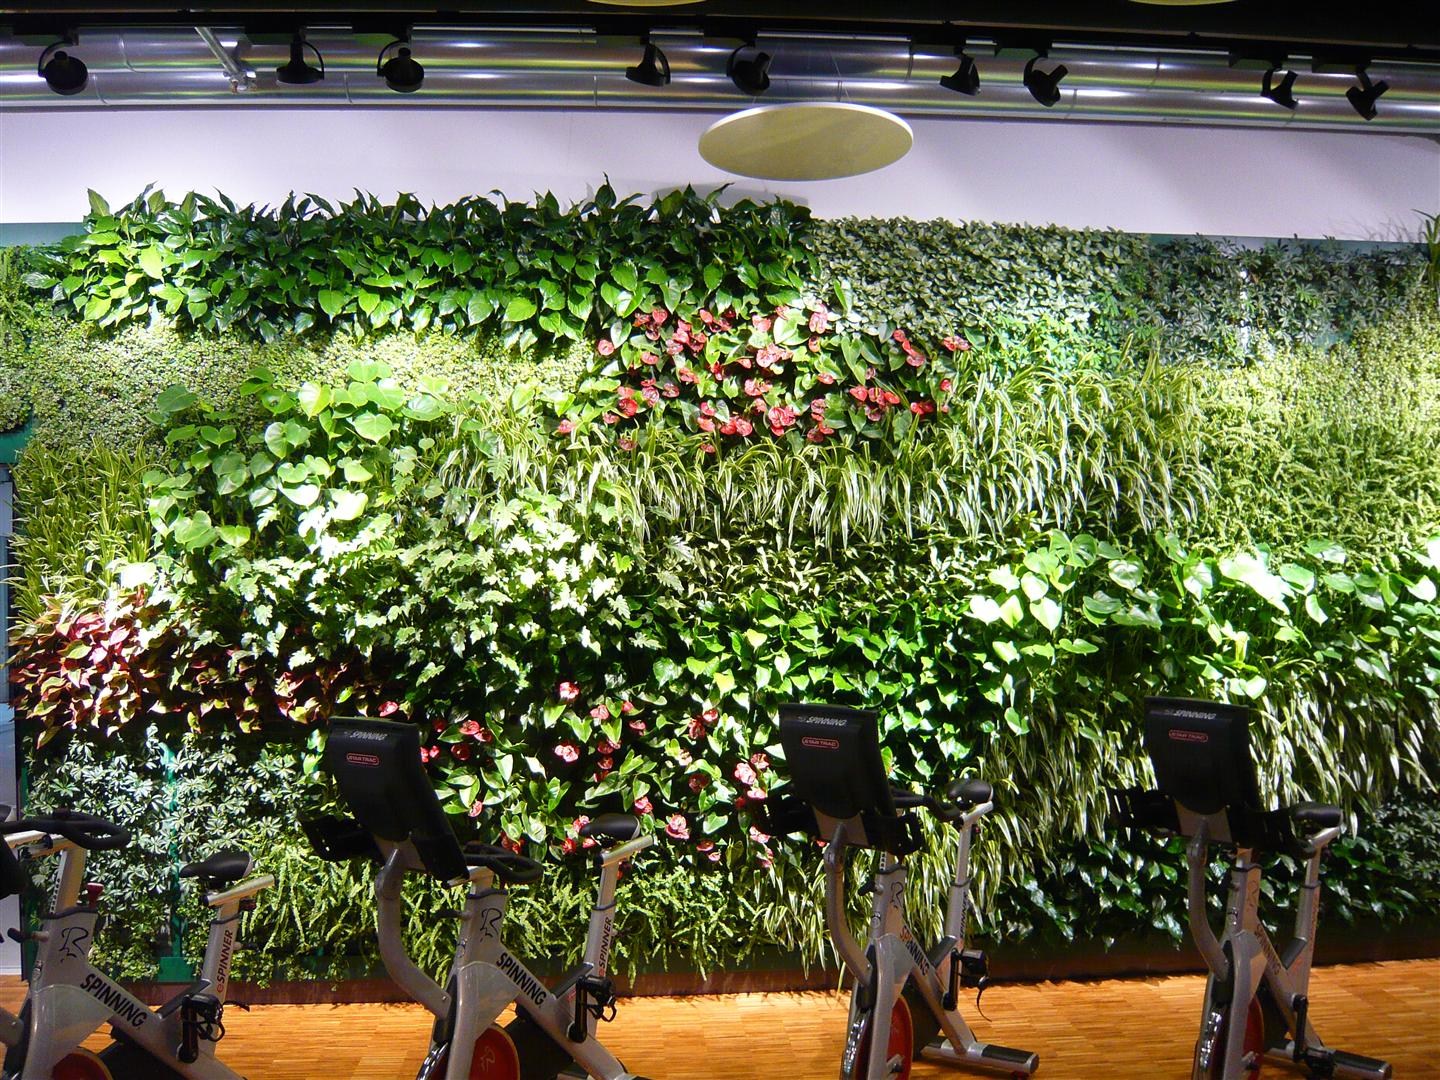 Extensive Indoor Green Wall at a Fitness Center in Nürnberg, Germany